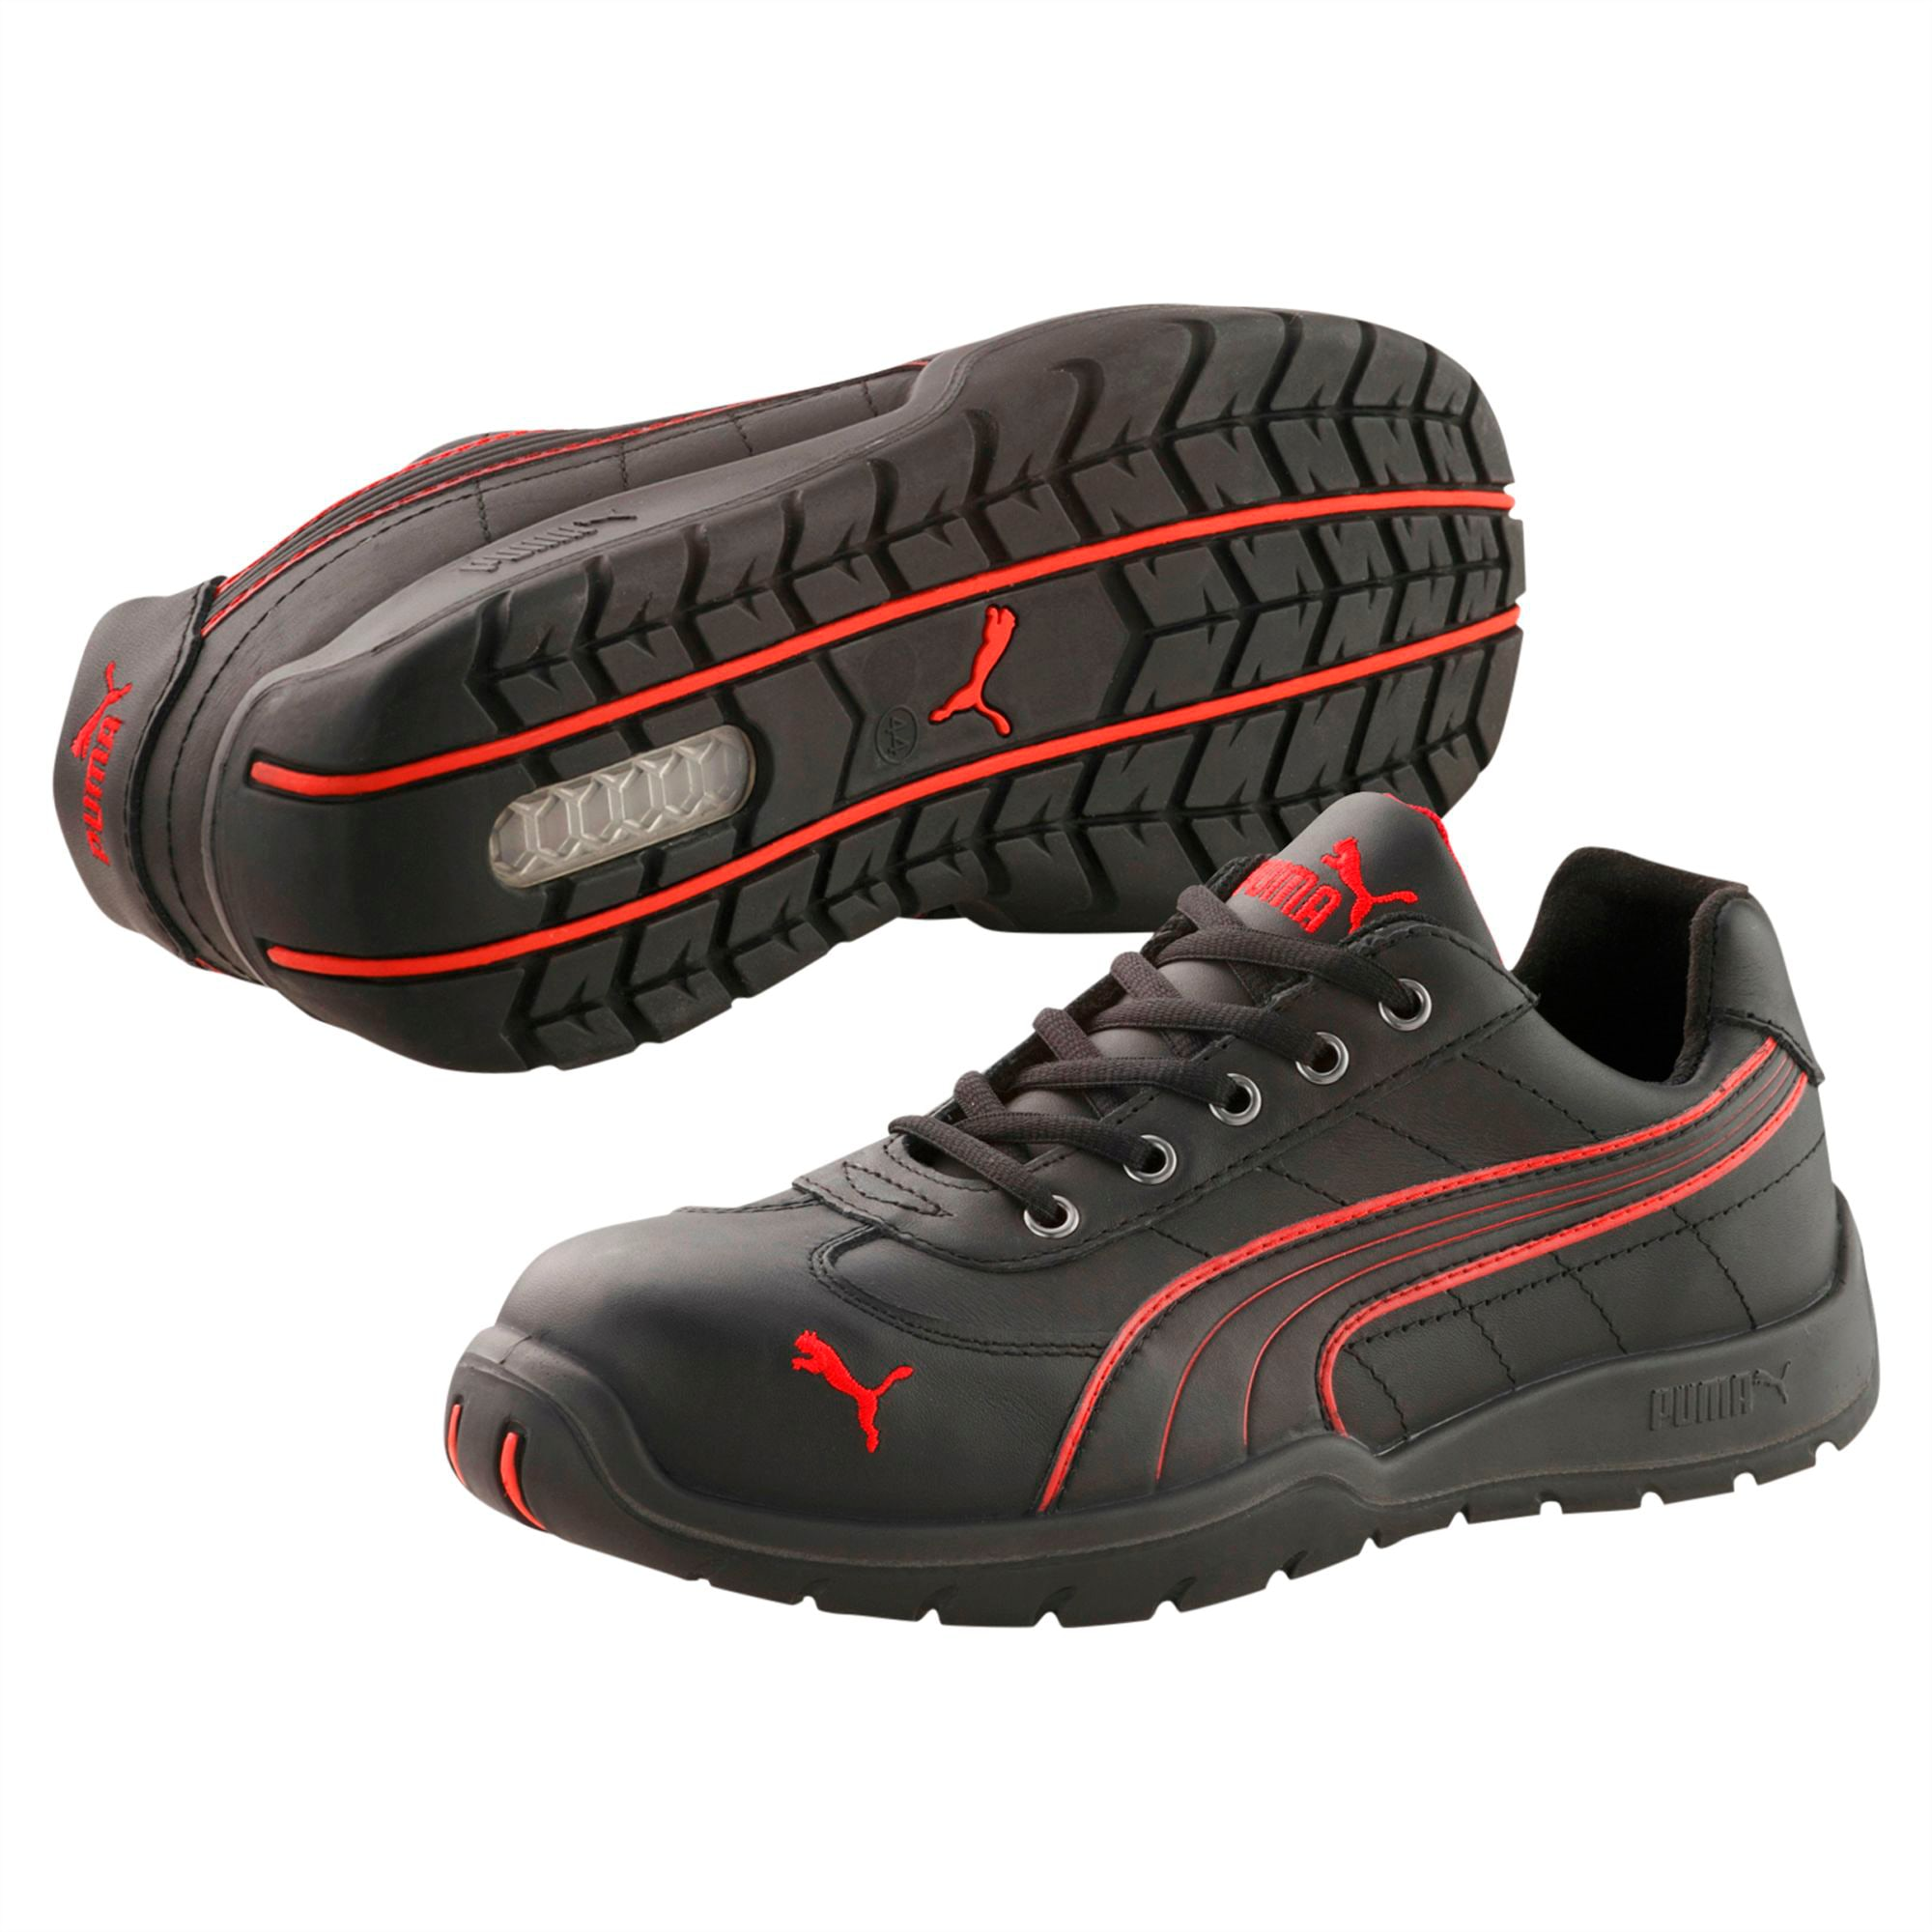 S3 HRO Moto Protect Safety Shoes